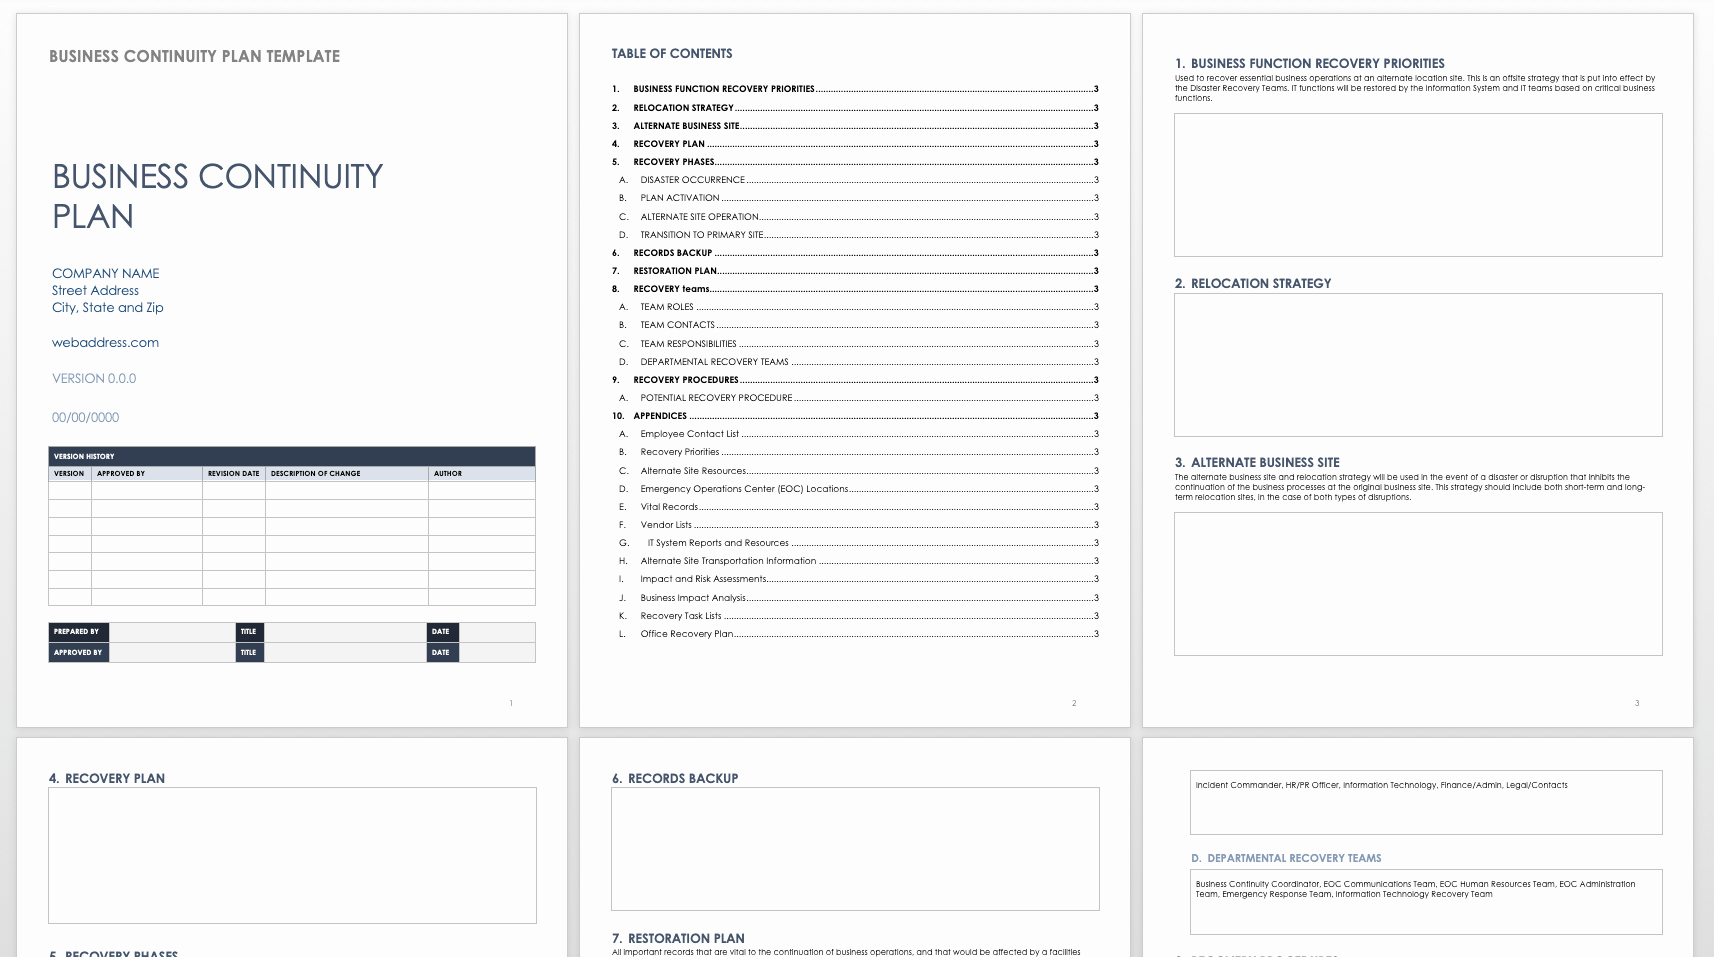 Disaster Recovery Plan Template Nist Inspirational Disaster Recovery Plan Template In Word Apple Pages